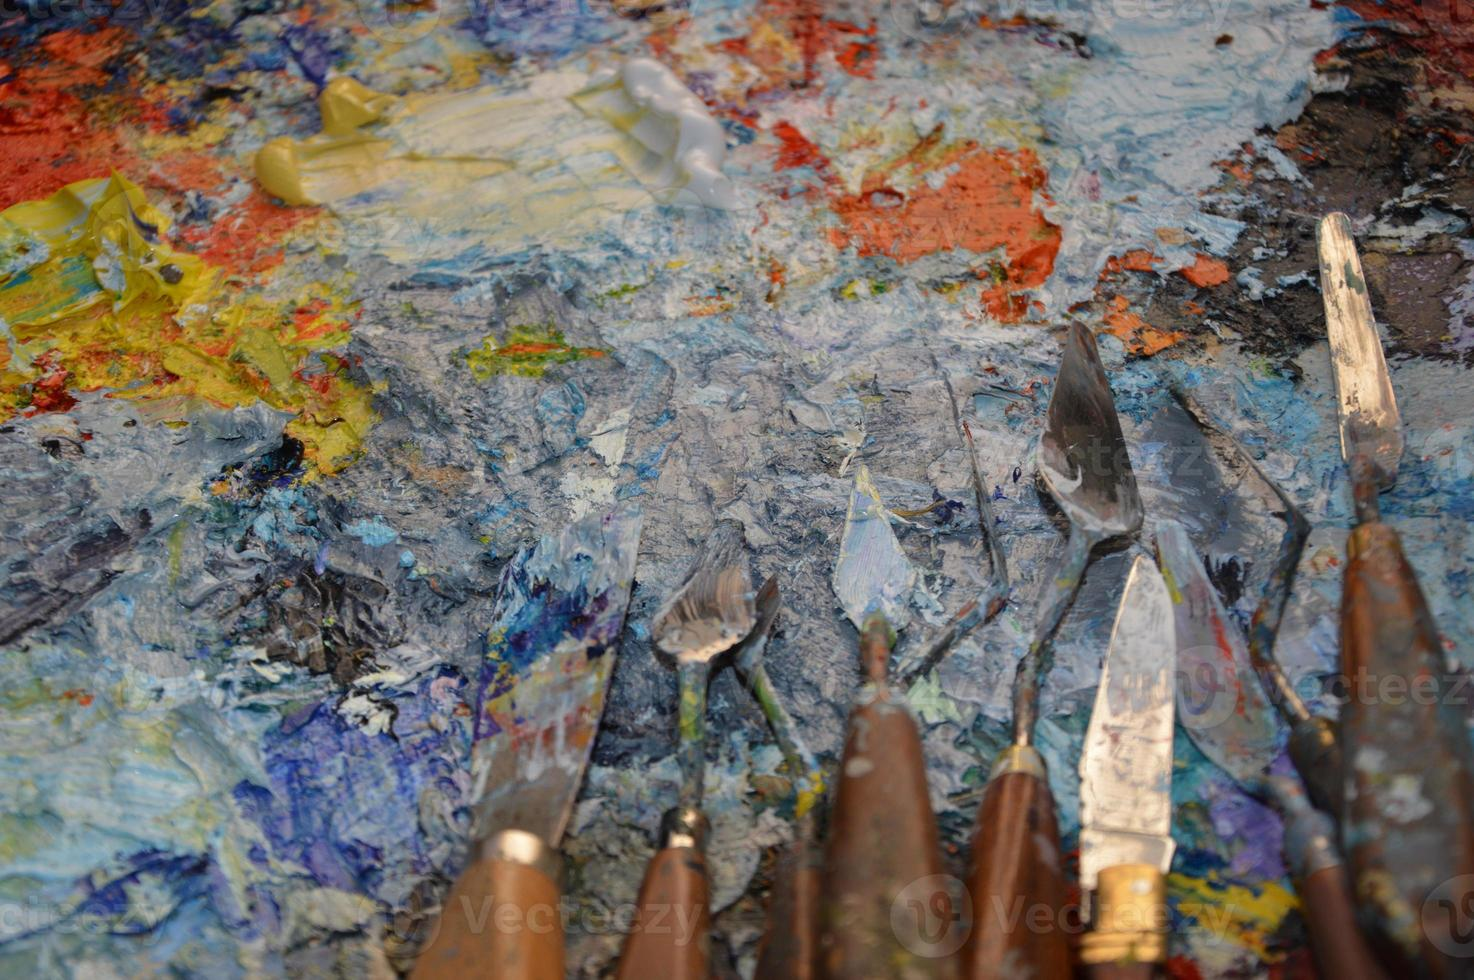 palette de peintre dans son atelier photo